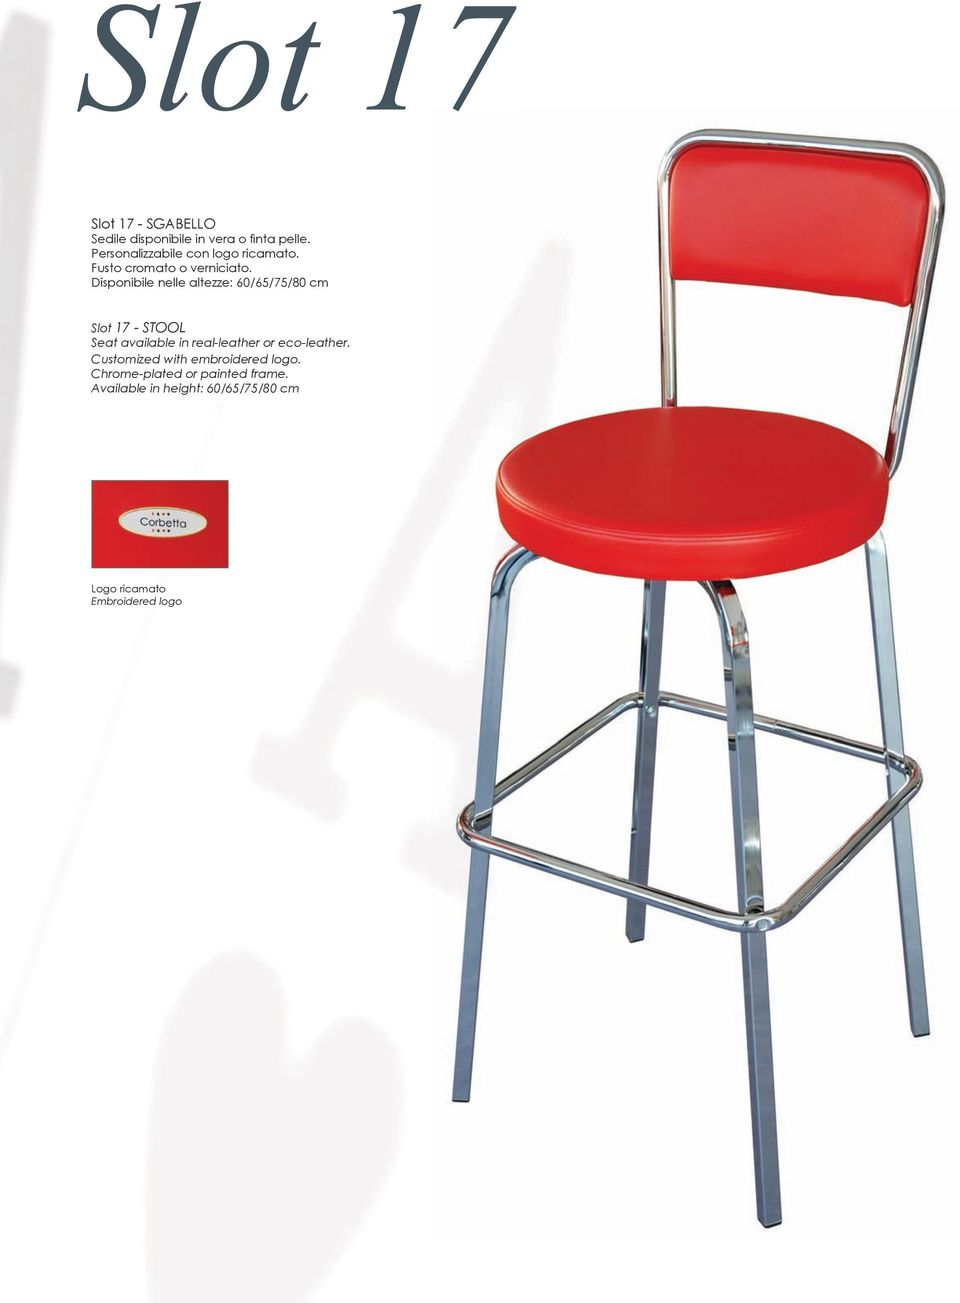 Disponibile nelle altezze: 60/65/75/80 cm Slot 17 - STOOL Seat available in real-leather or